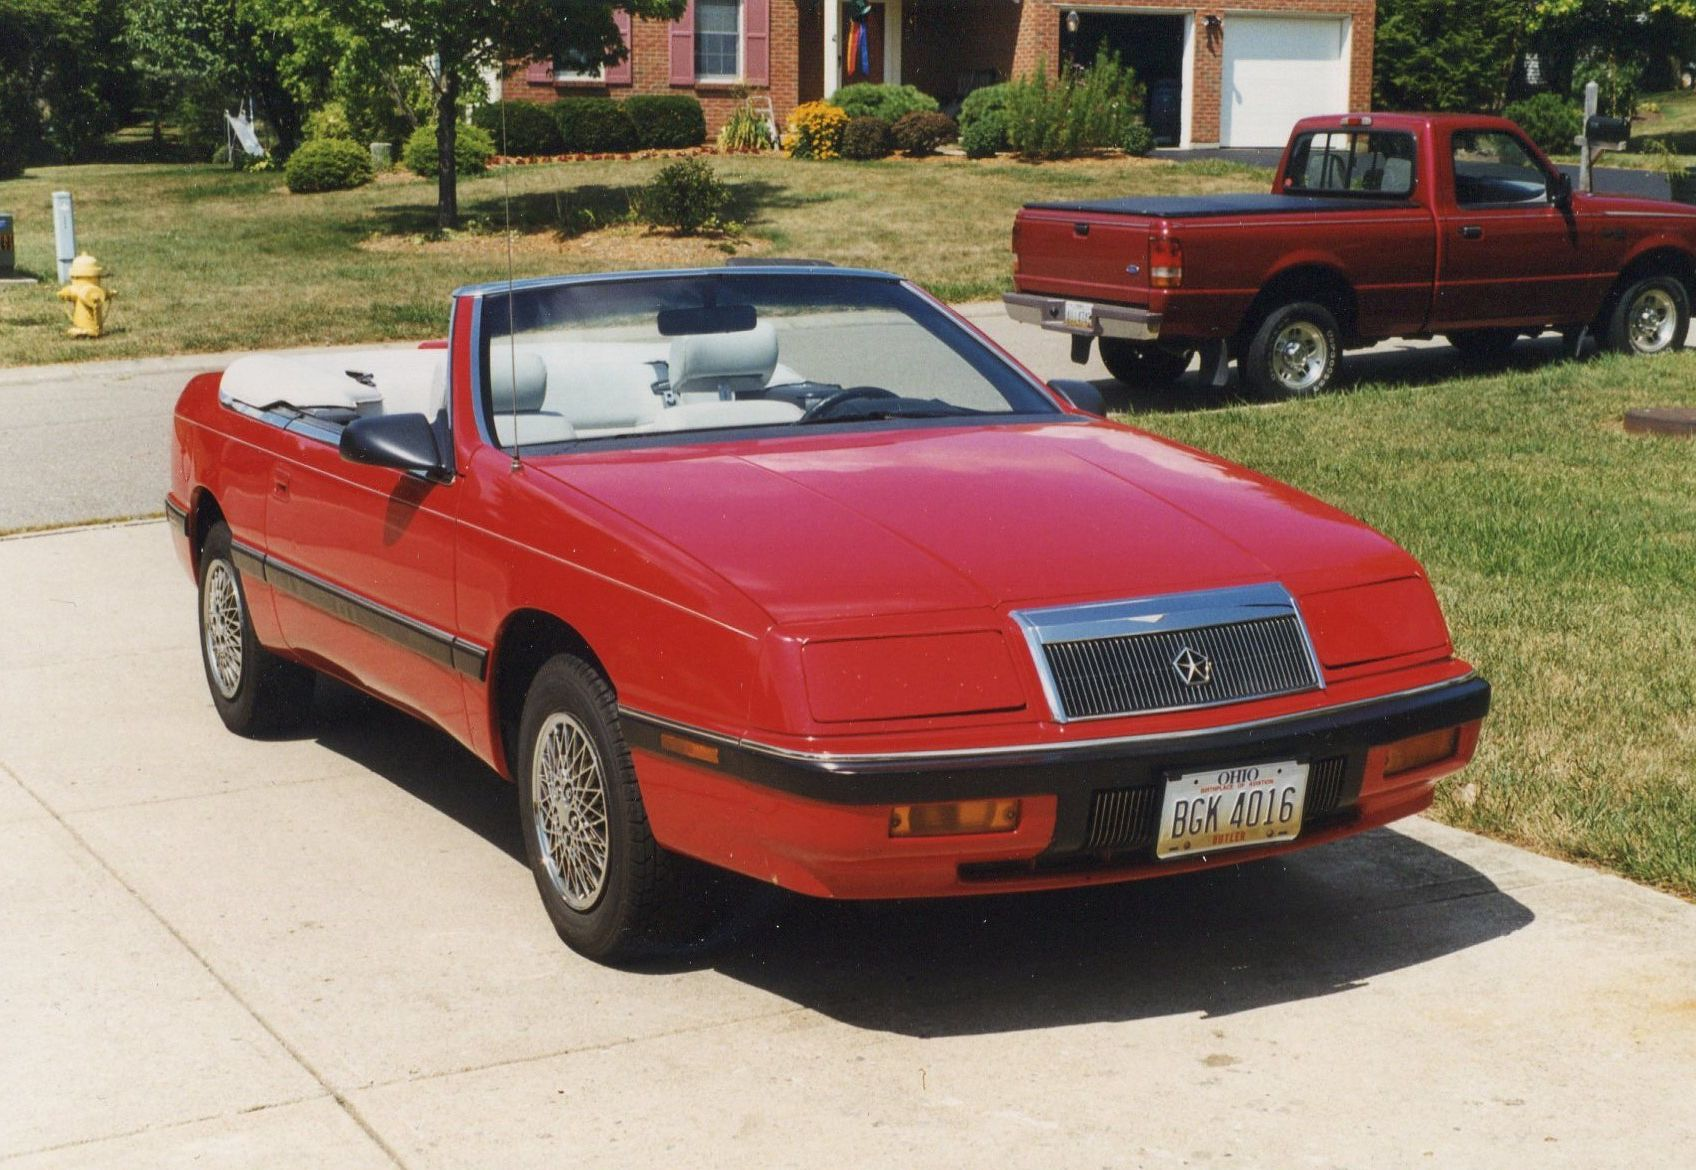 92 chrysler lebaron convertible